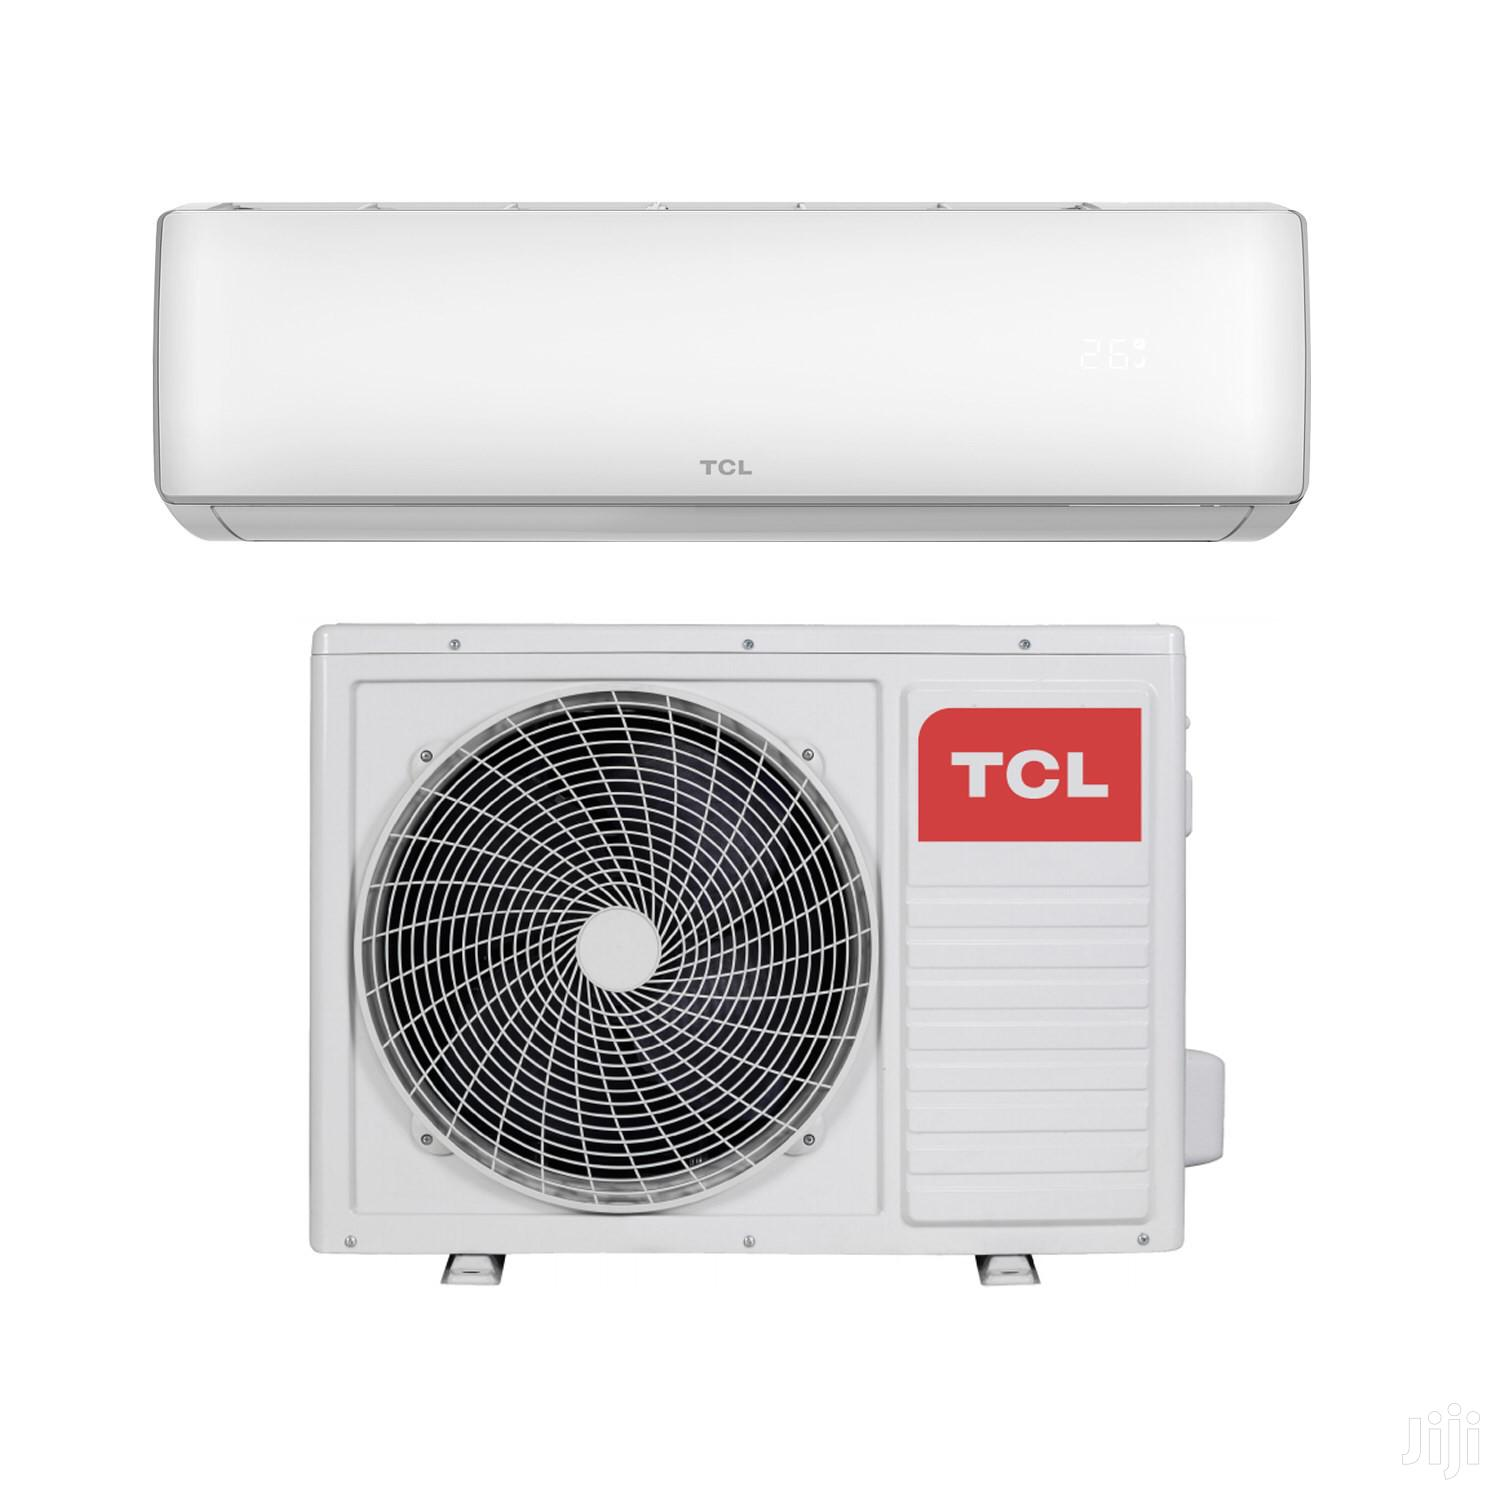 TCL 1.5 HP Split Air Conditioner 3stars